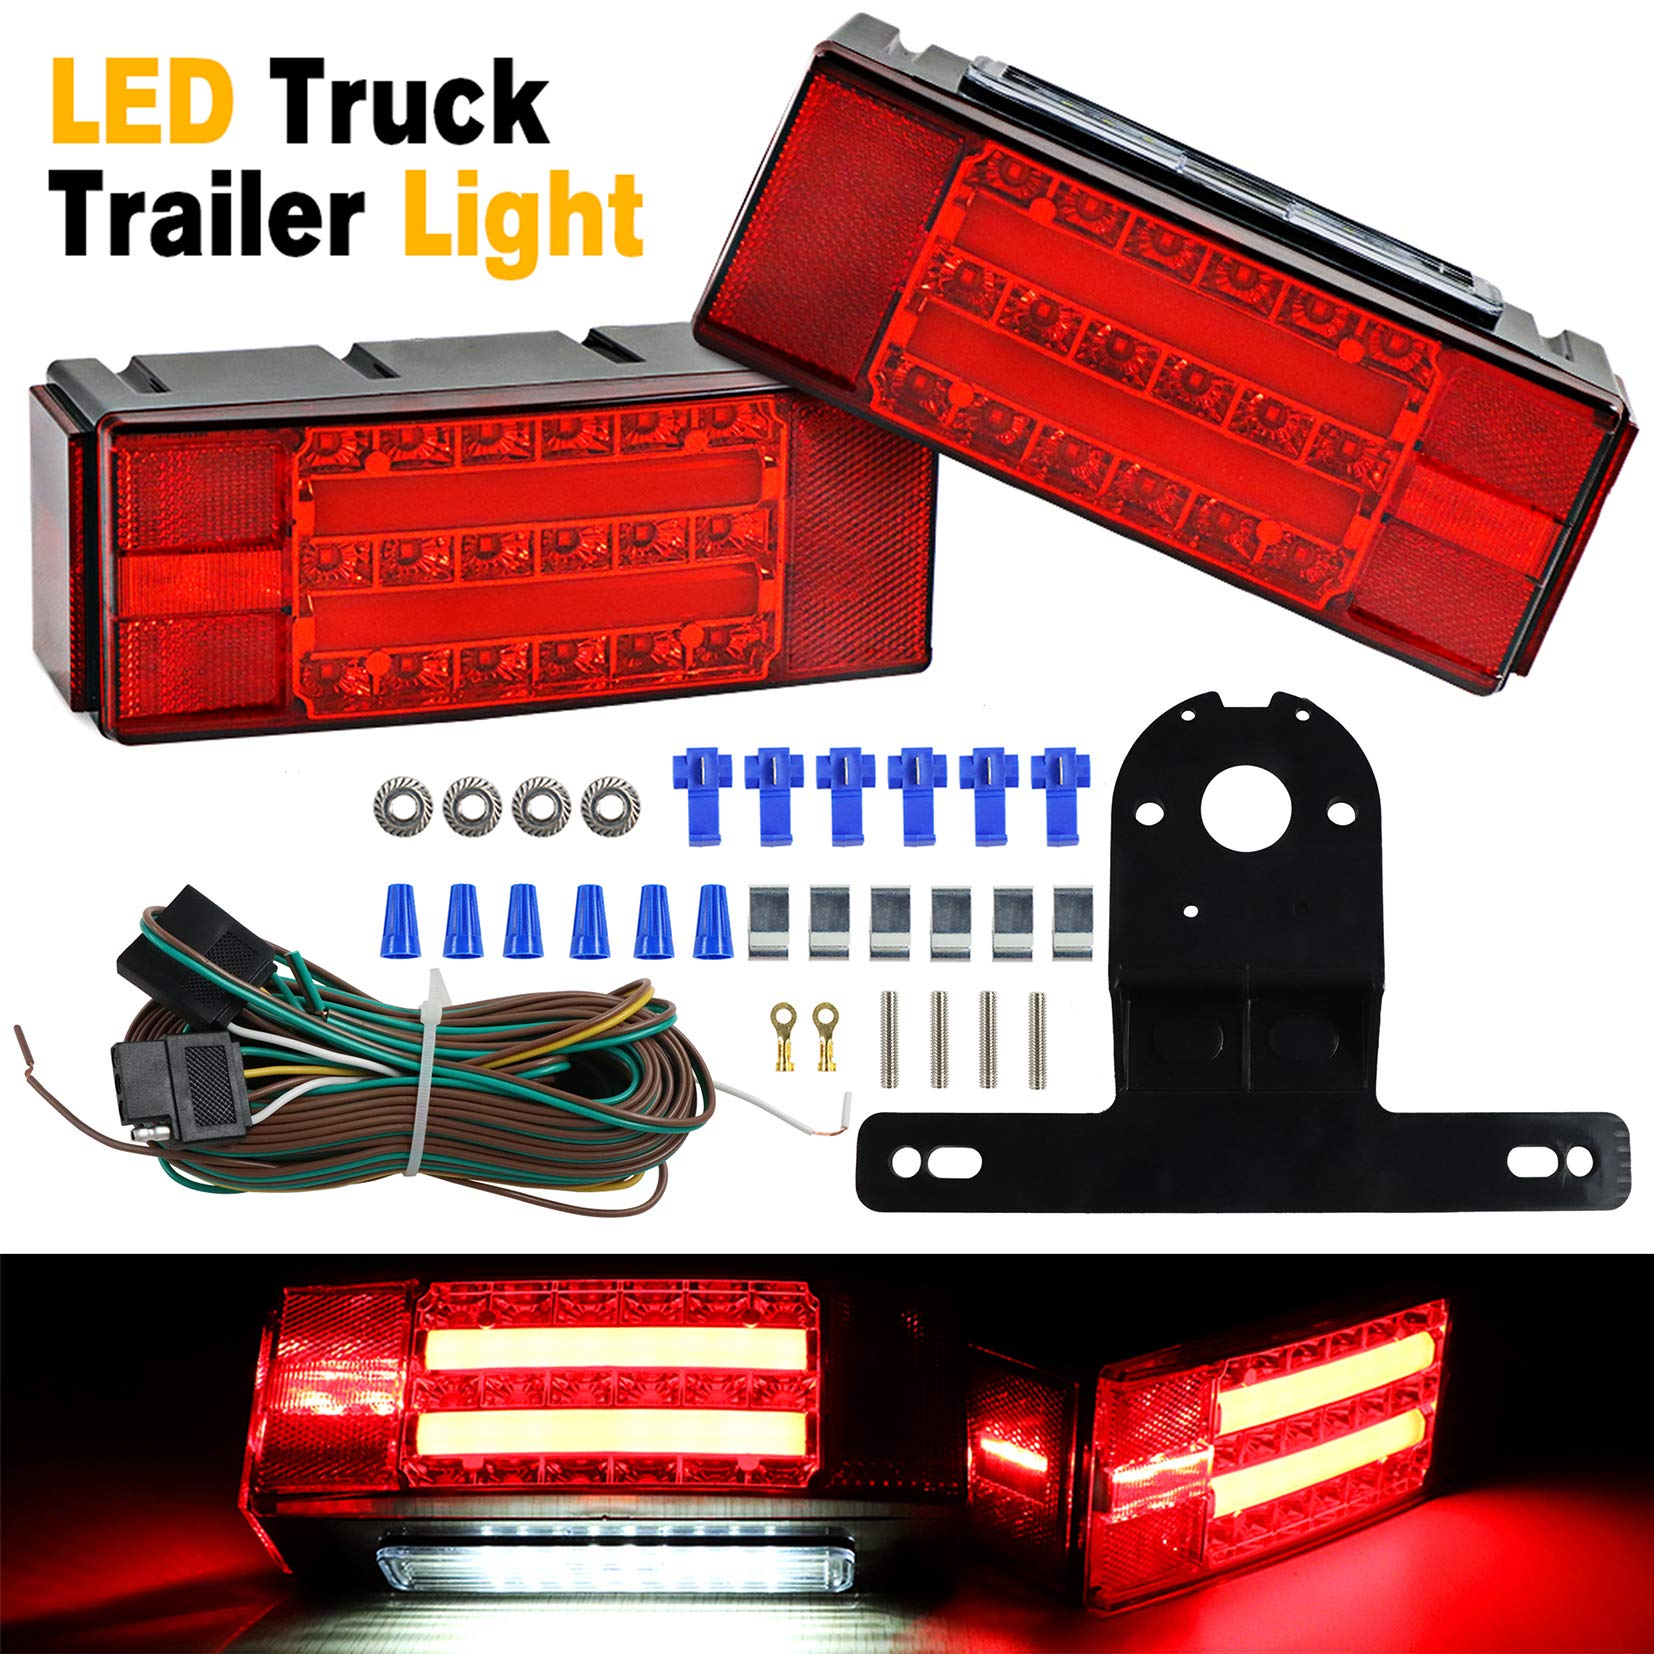 TOPNEW New Design 12V Submersible Rectangular Trailer Light Kit Low Profile LED Trailer Light Stop Tail Turn Signal Running Lights for Truck Marine RV Boat Camper Trailer Waterproof and DOT Compliant by TOPNEW